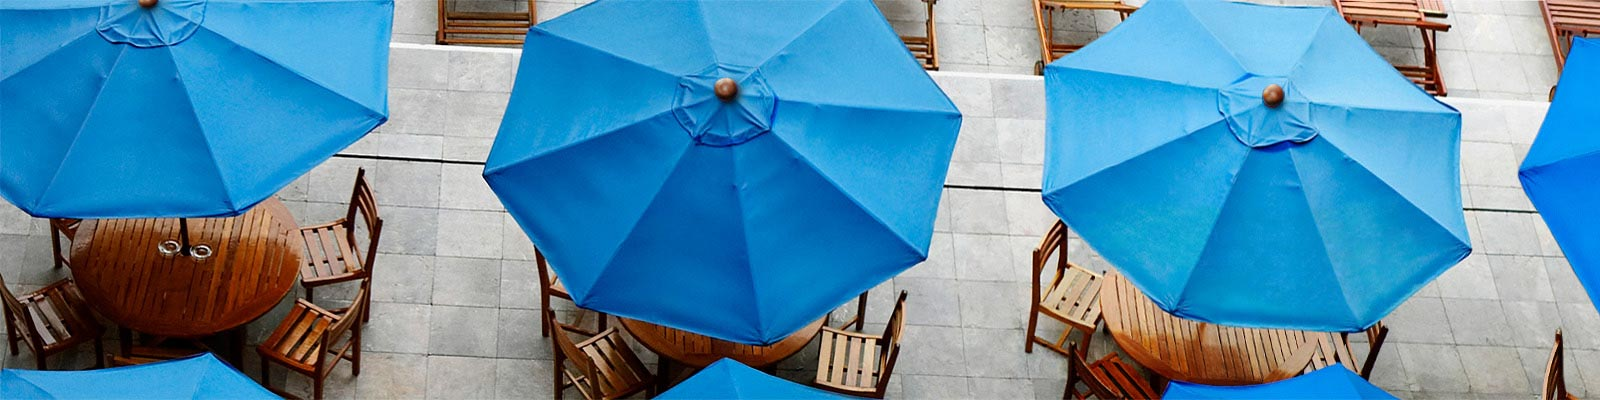 Custom Restaurant Market and Patio Umbrellas